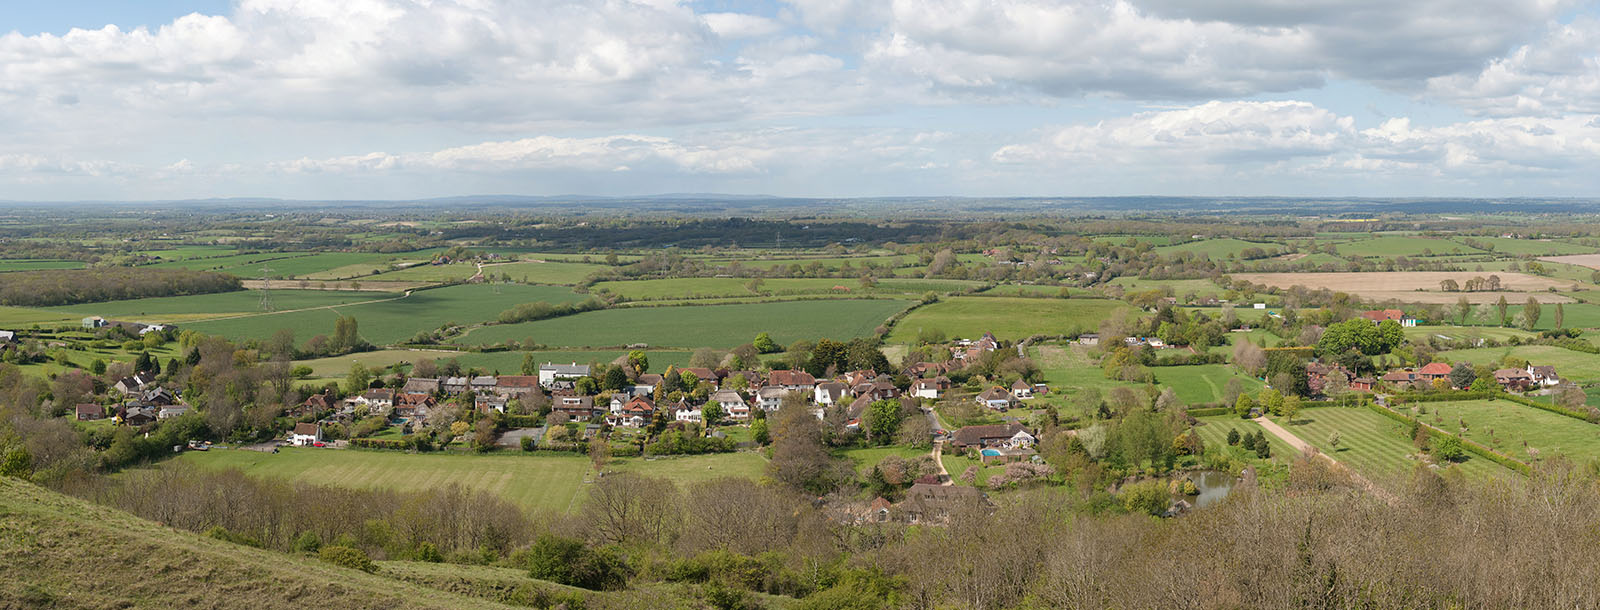 The village of Fulking and surrounds in West Sussex, England, viewed from Devil's Dyke.